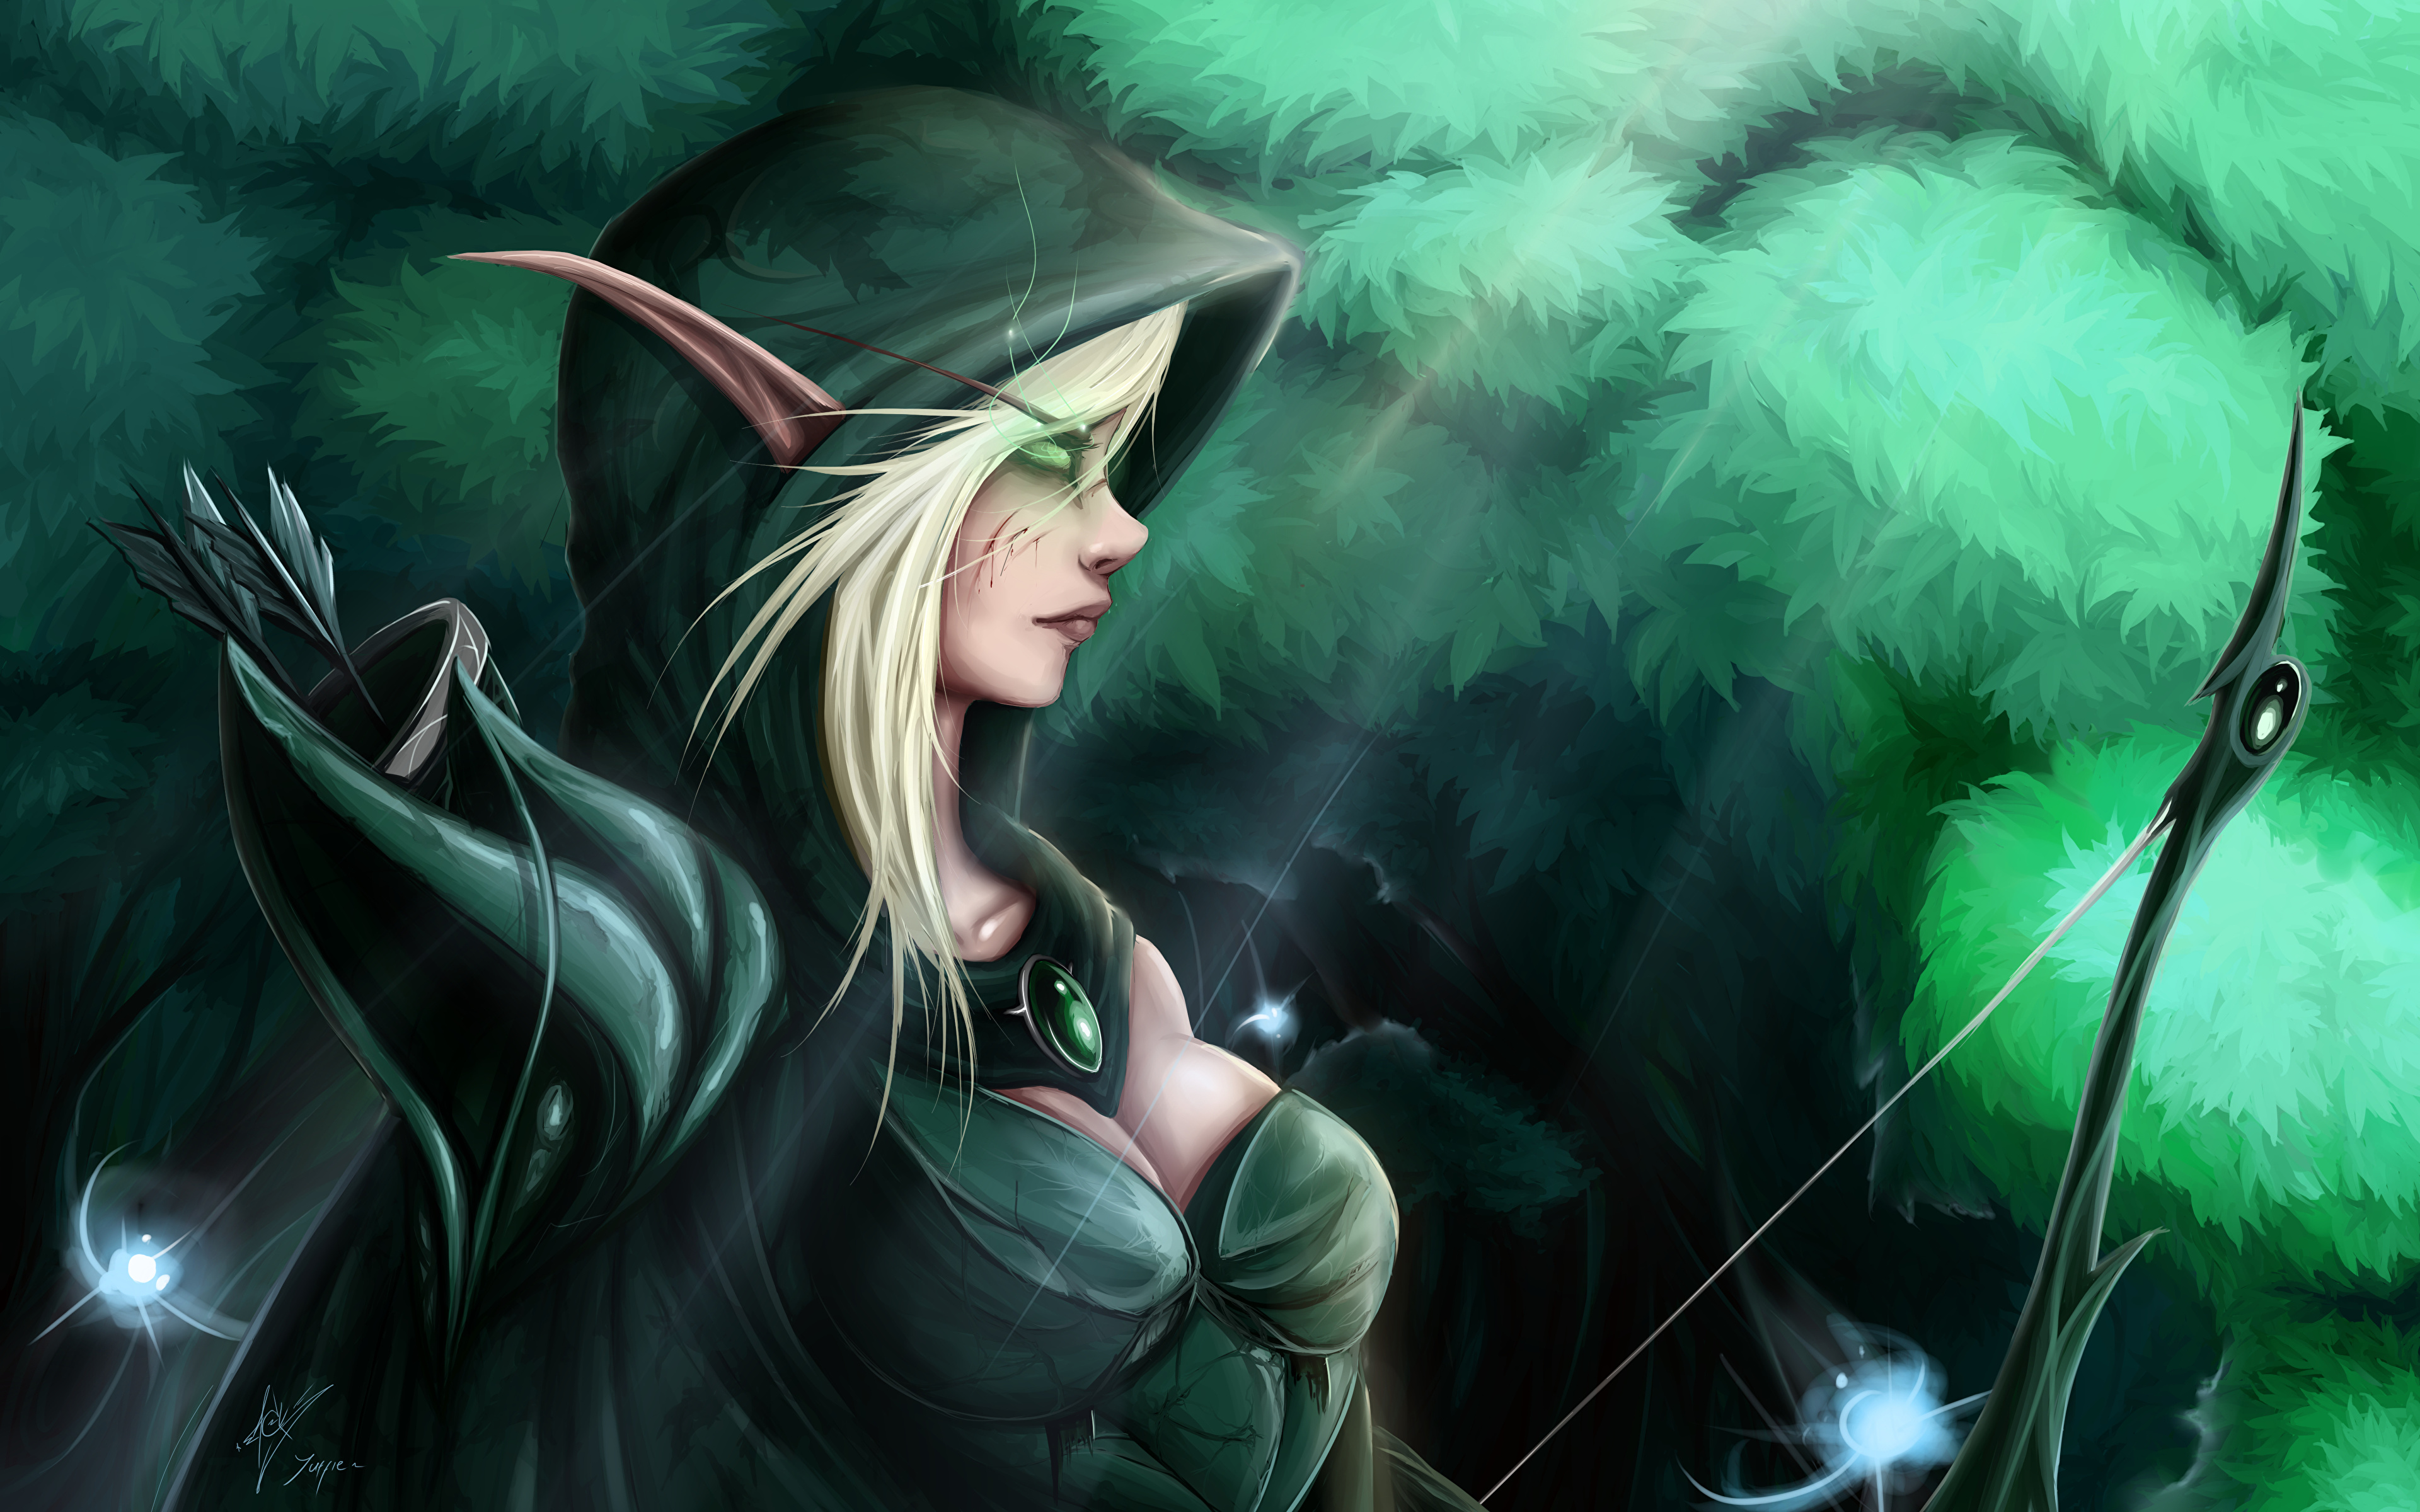 Pictures World Of Warcraft Archers Elf Female Fantasy Vdeo